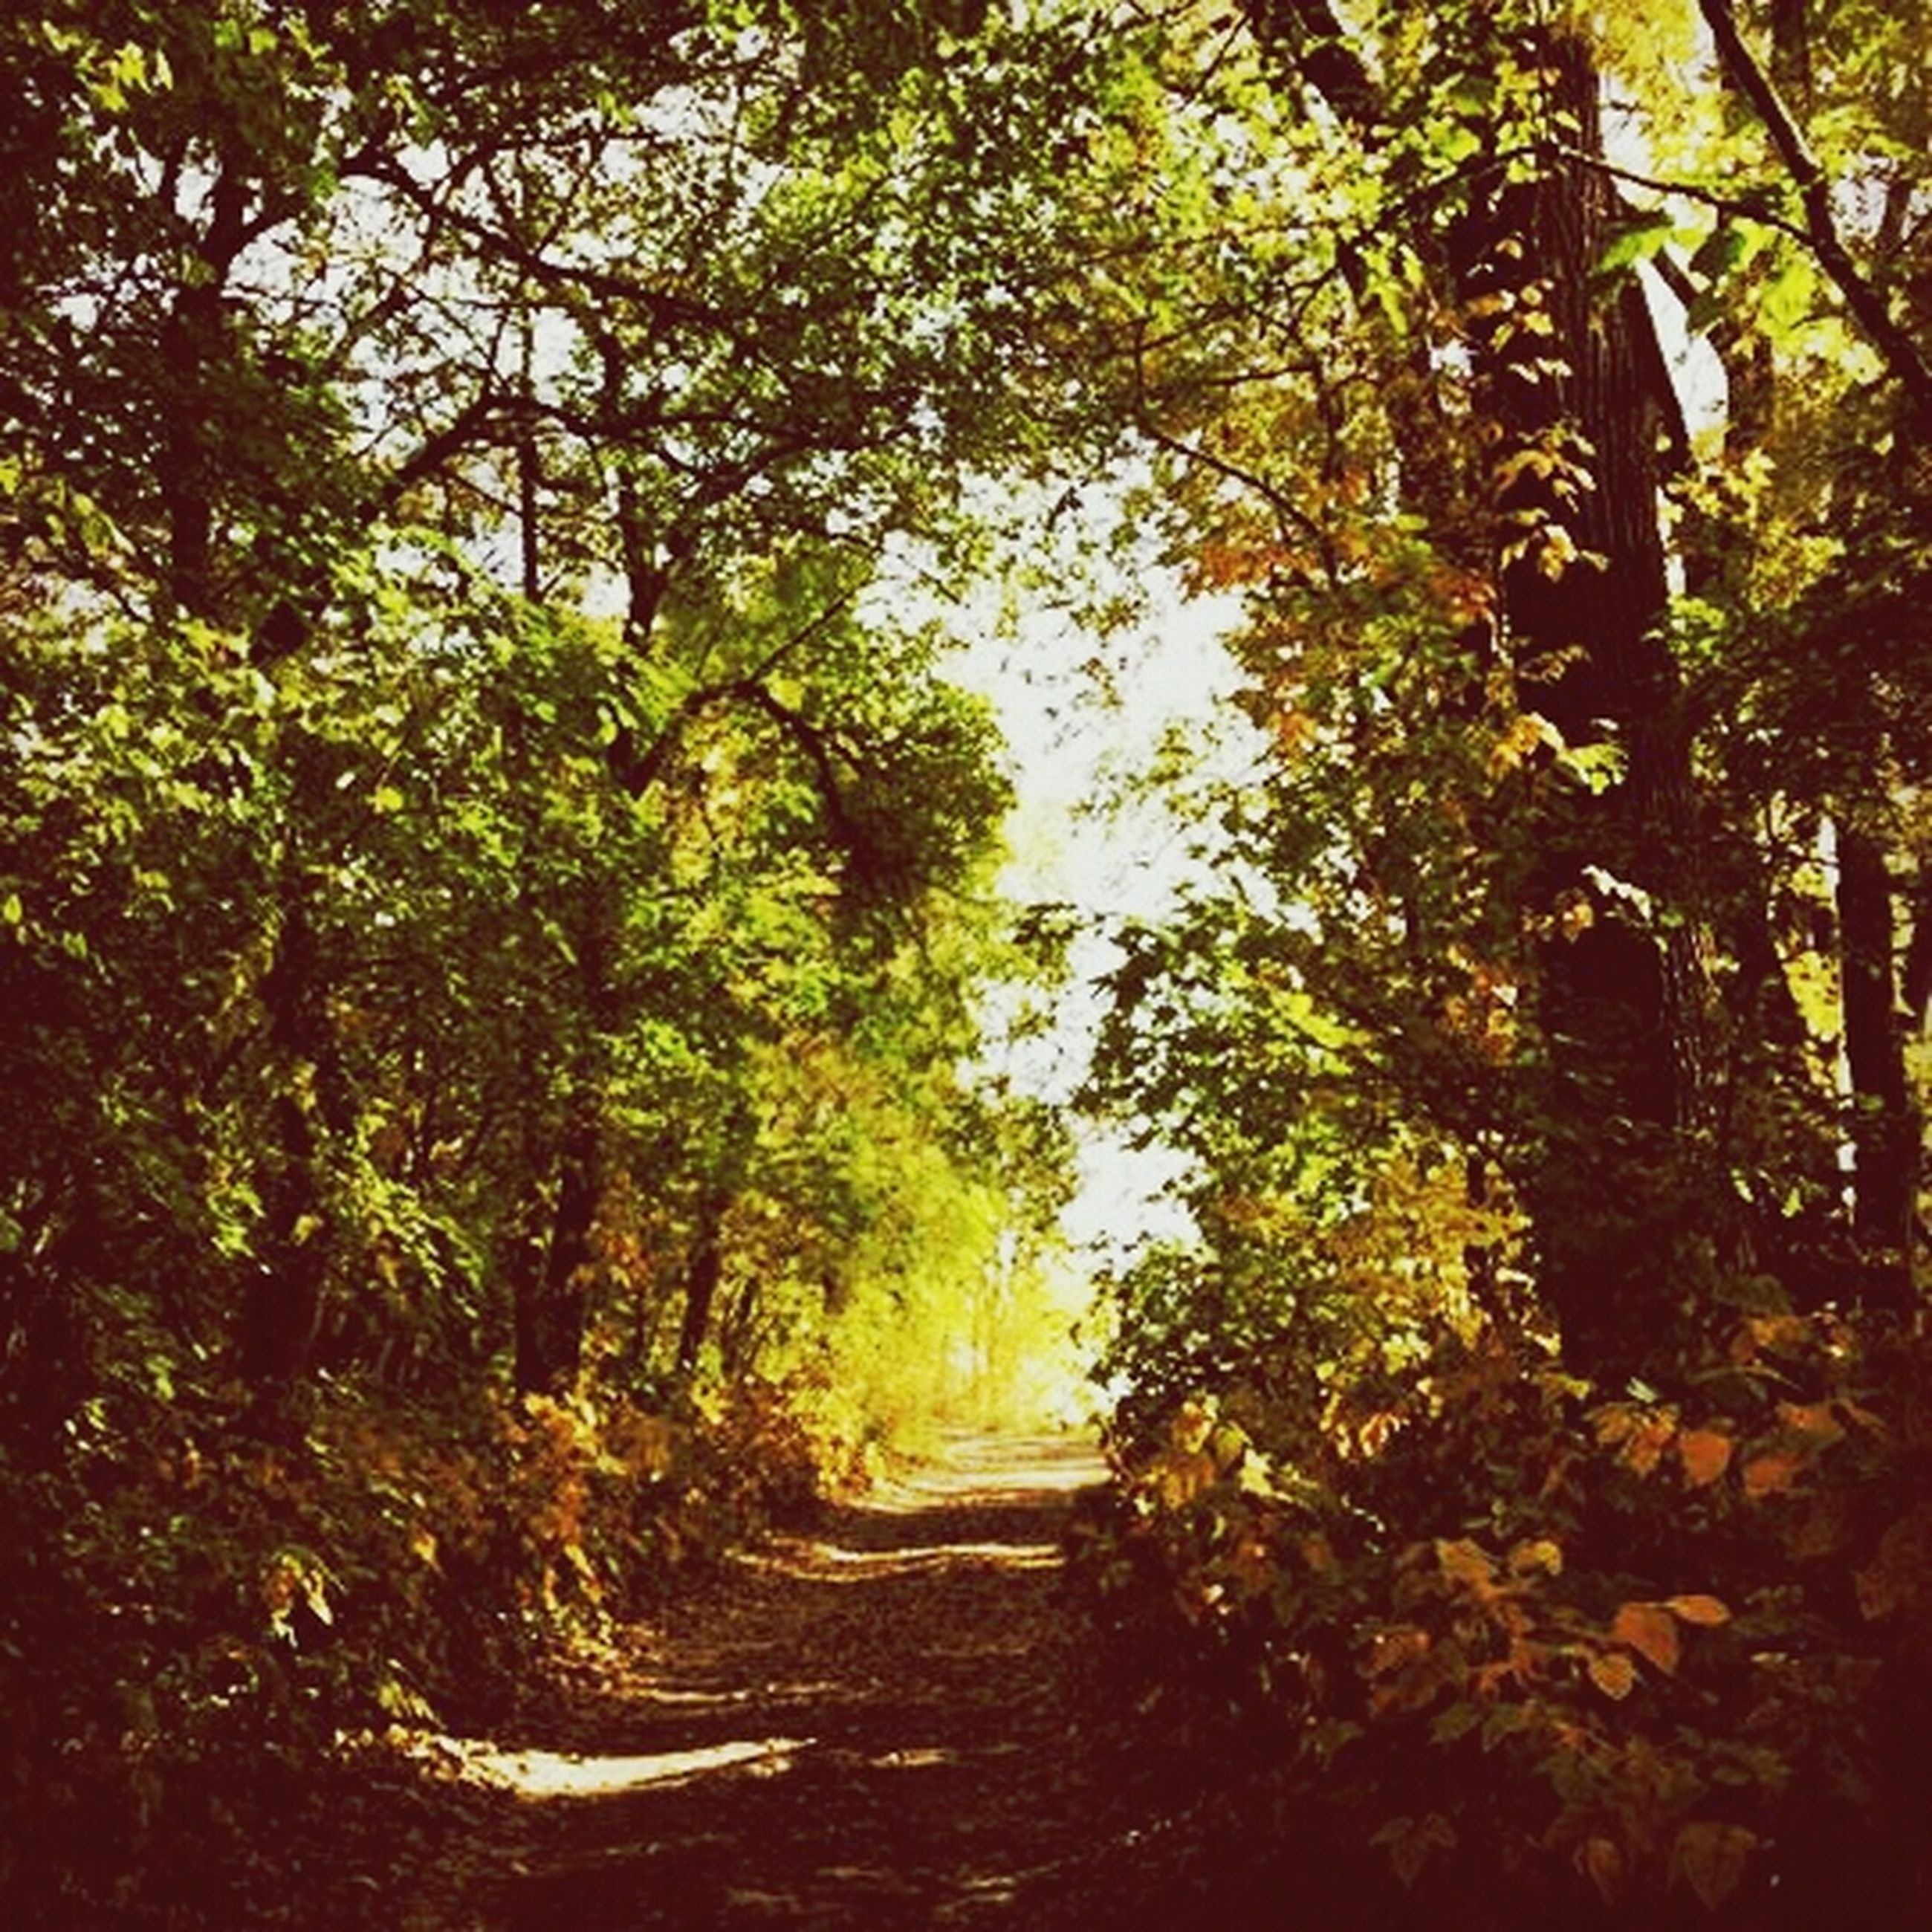 tree, the way forward, growth, tranquility, branch, nature, diminishing perspective, footpath, tranquil scene, beauty in nature, forest, green color, sunlight, vanishing point, pathway, scenics, outdoors, narrow, day, dirt road